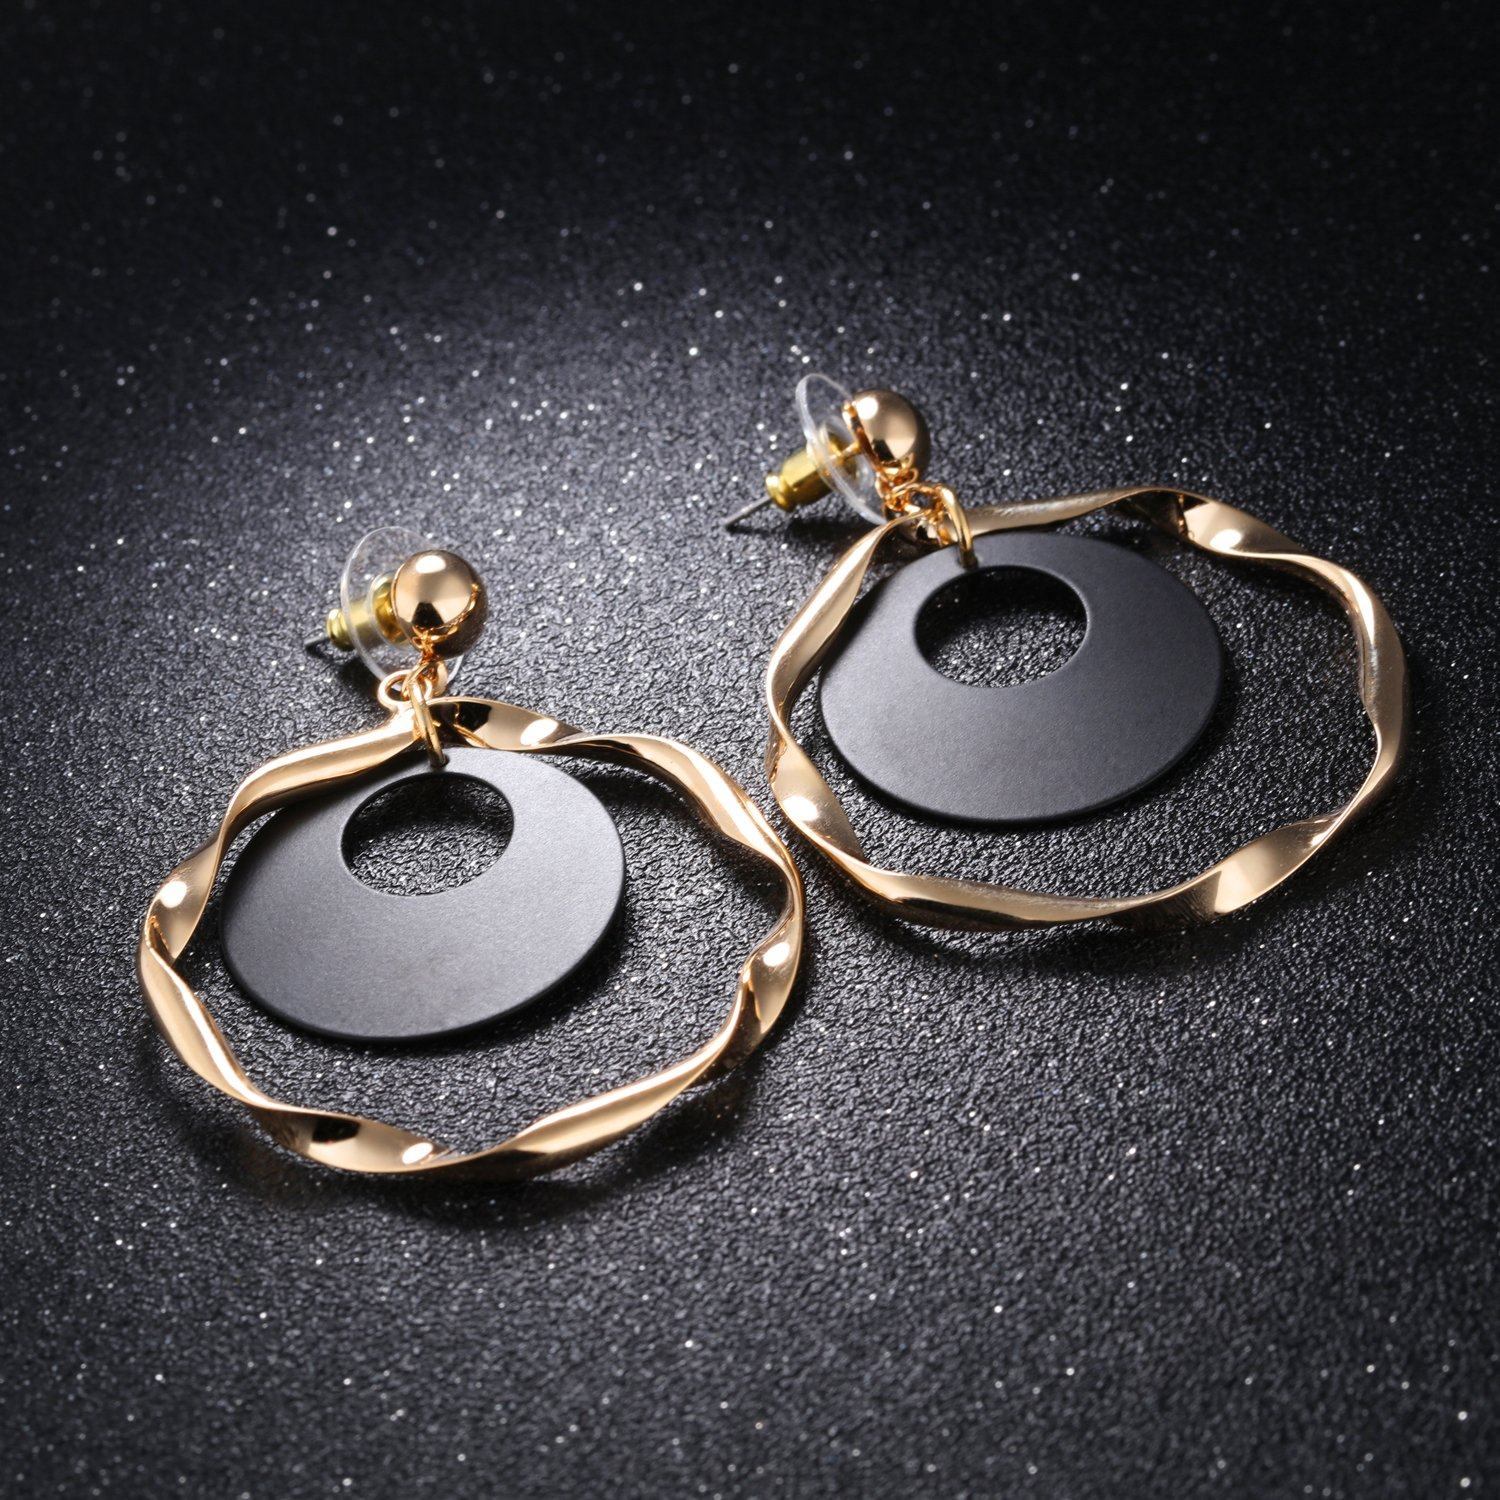 LOHOME Fashion Earrings 18K Gold Tone Swing Twisted Ring Charm Studs Earring for Womens